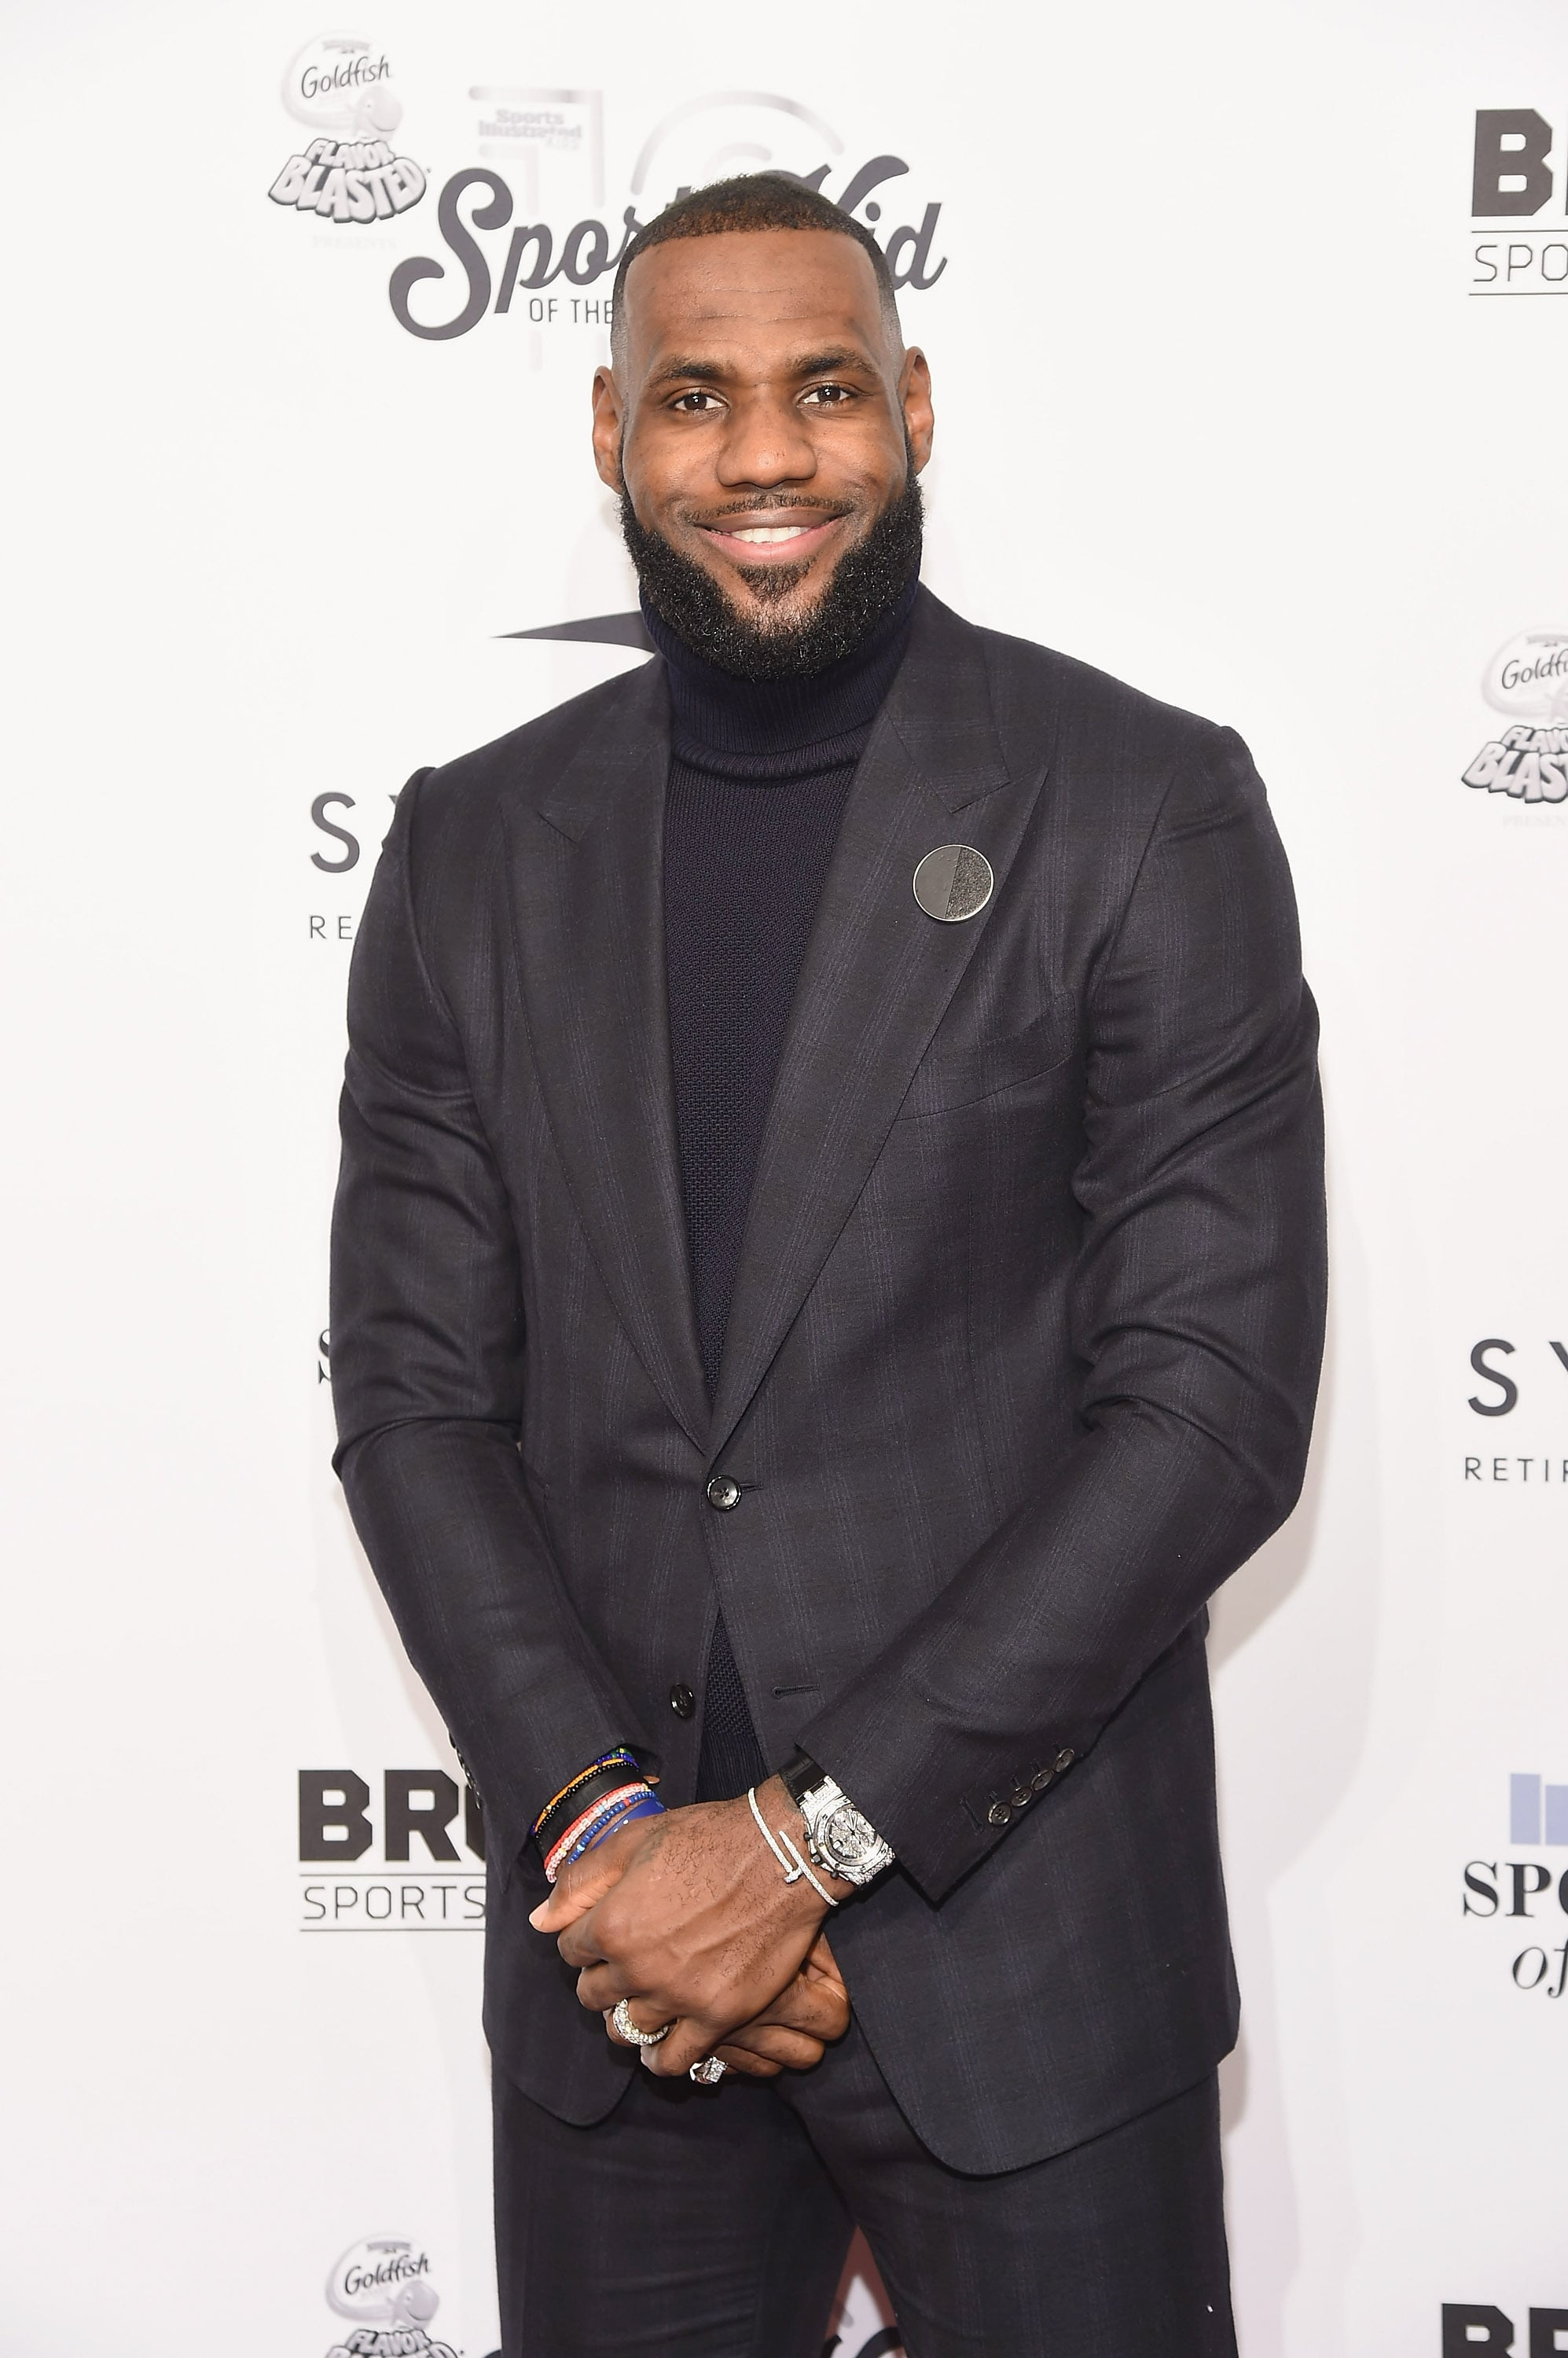 NEW YORK, NY - DECEMBER 12: Event honouree LeBron James attends the 2016 Sports Illustrated Sportsperson of the Year at Barclays Centre of Brooklyn on December 12, 2016 in the Brooklyn borough of New York City.  (Photo by Gary Gershoff/WireImage)